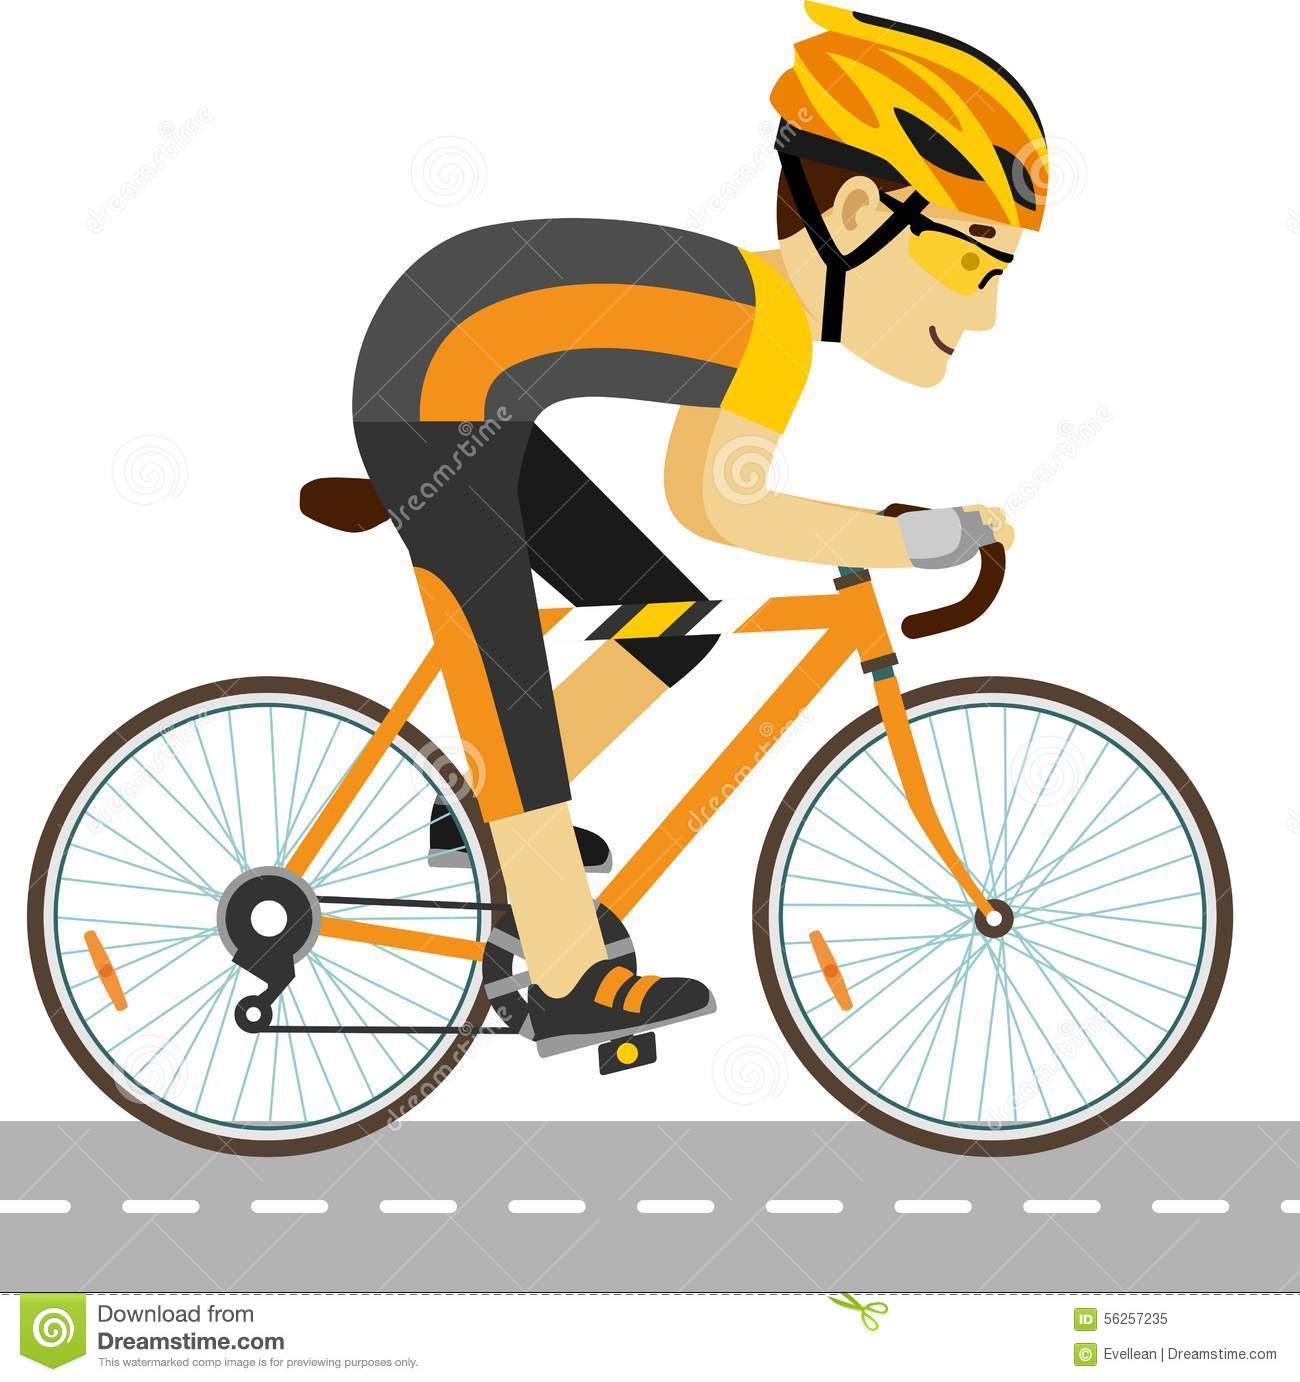 Racing Bicycle Clipart Young Racing Cyclist Man With Bike In Flat Style Stock